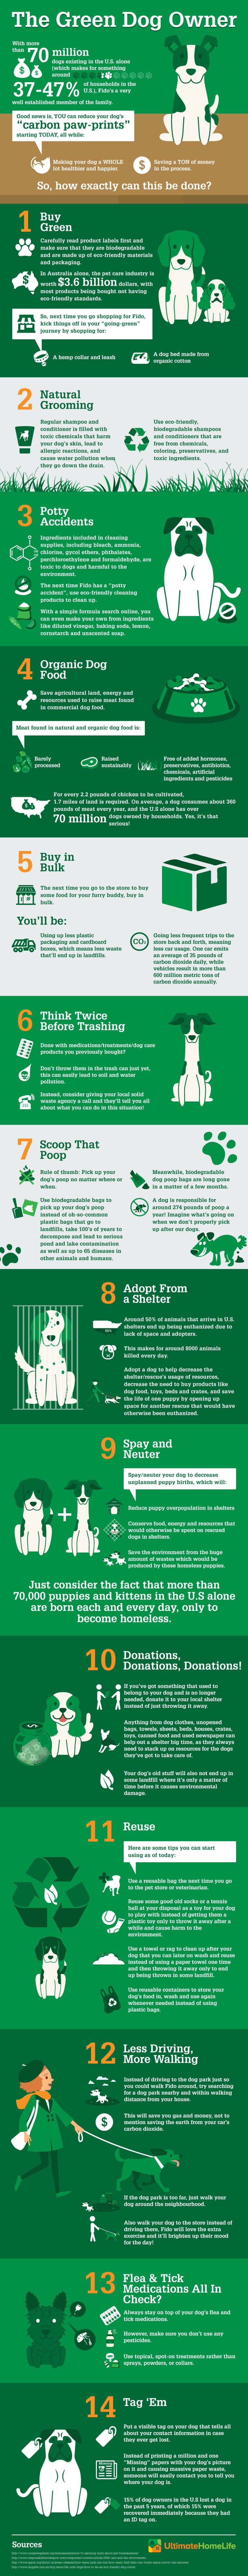 Going Green With Your Pet / Infographic